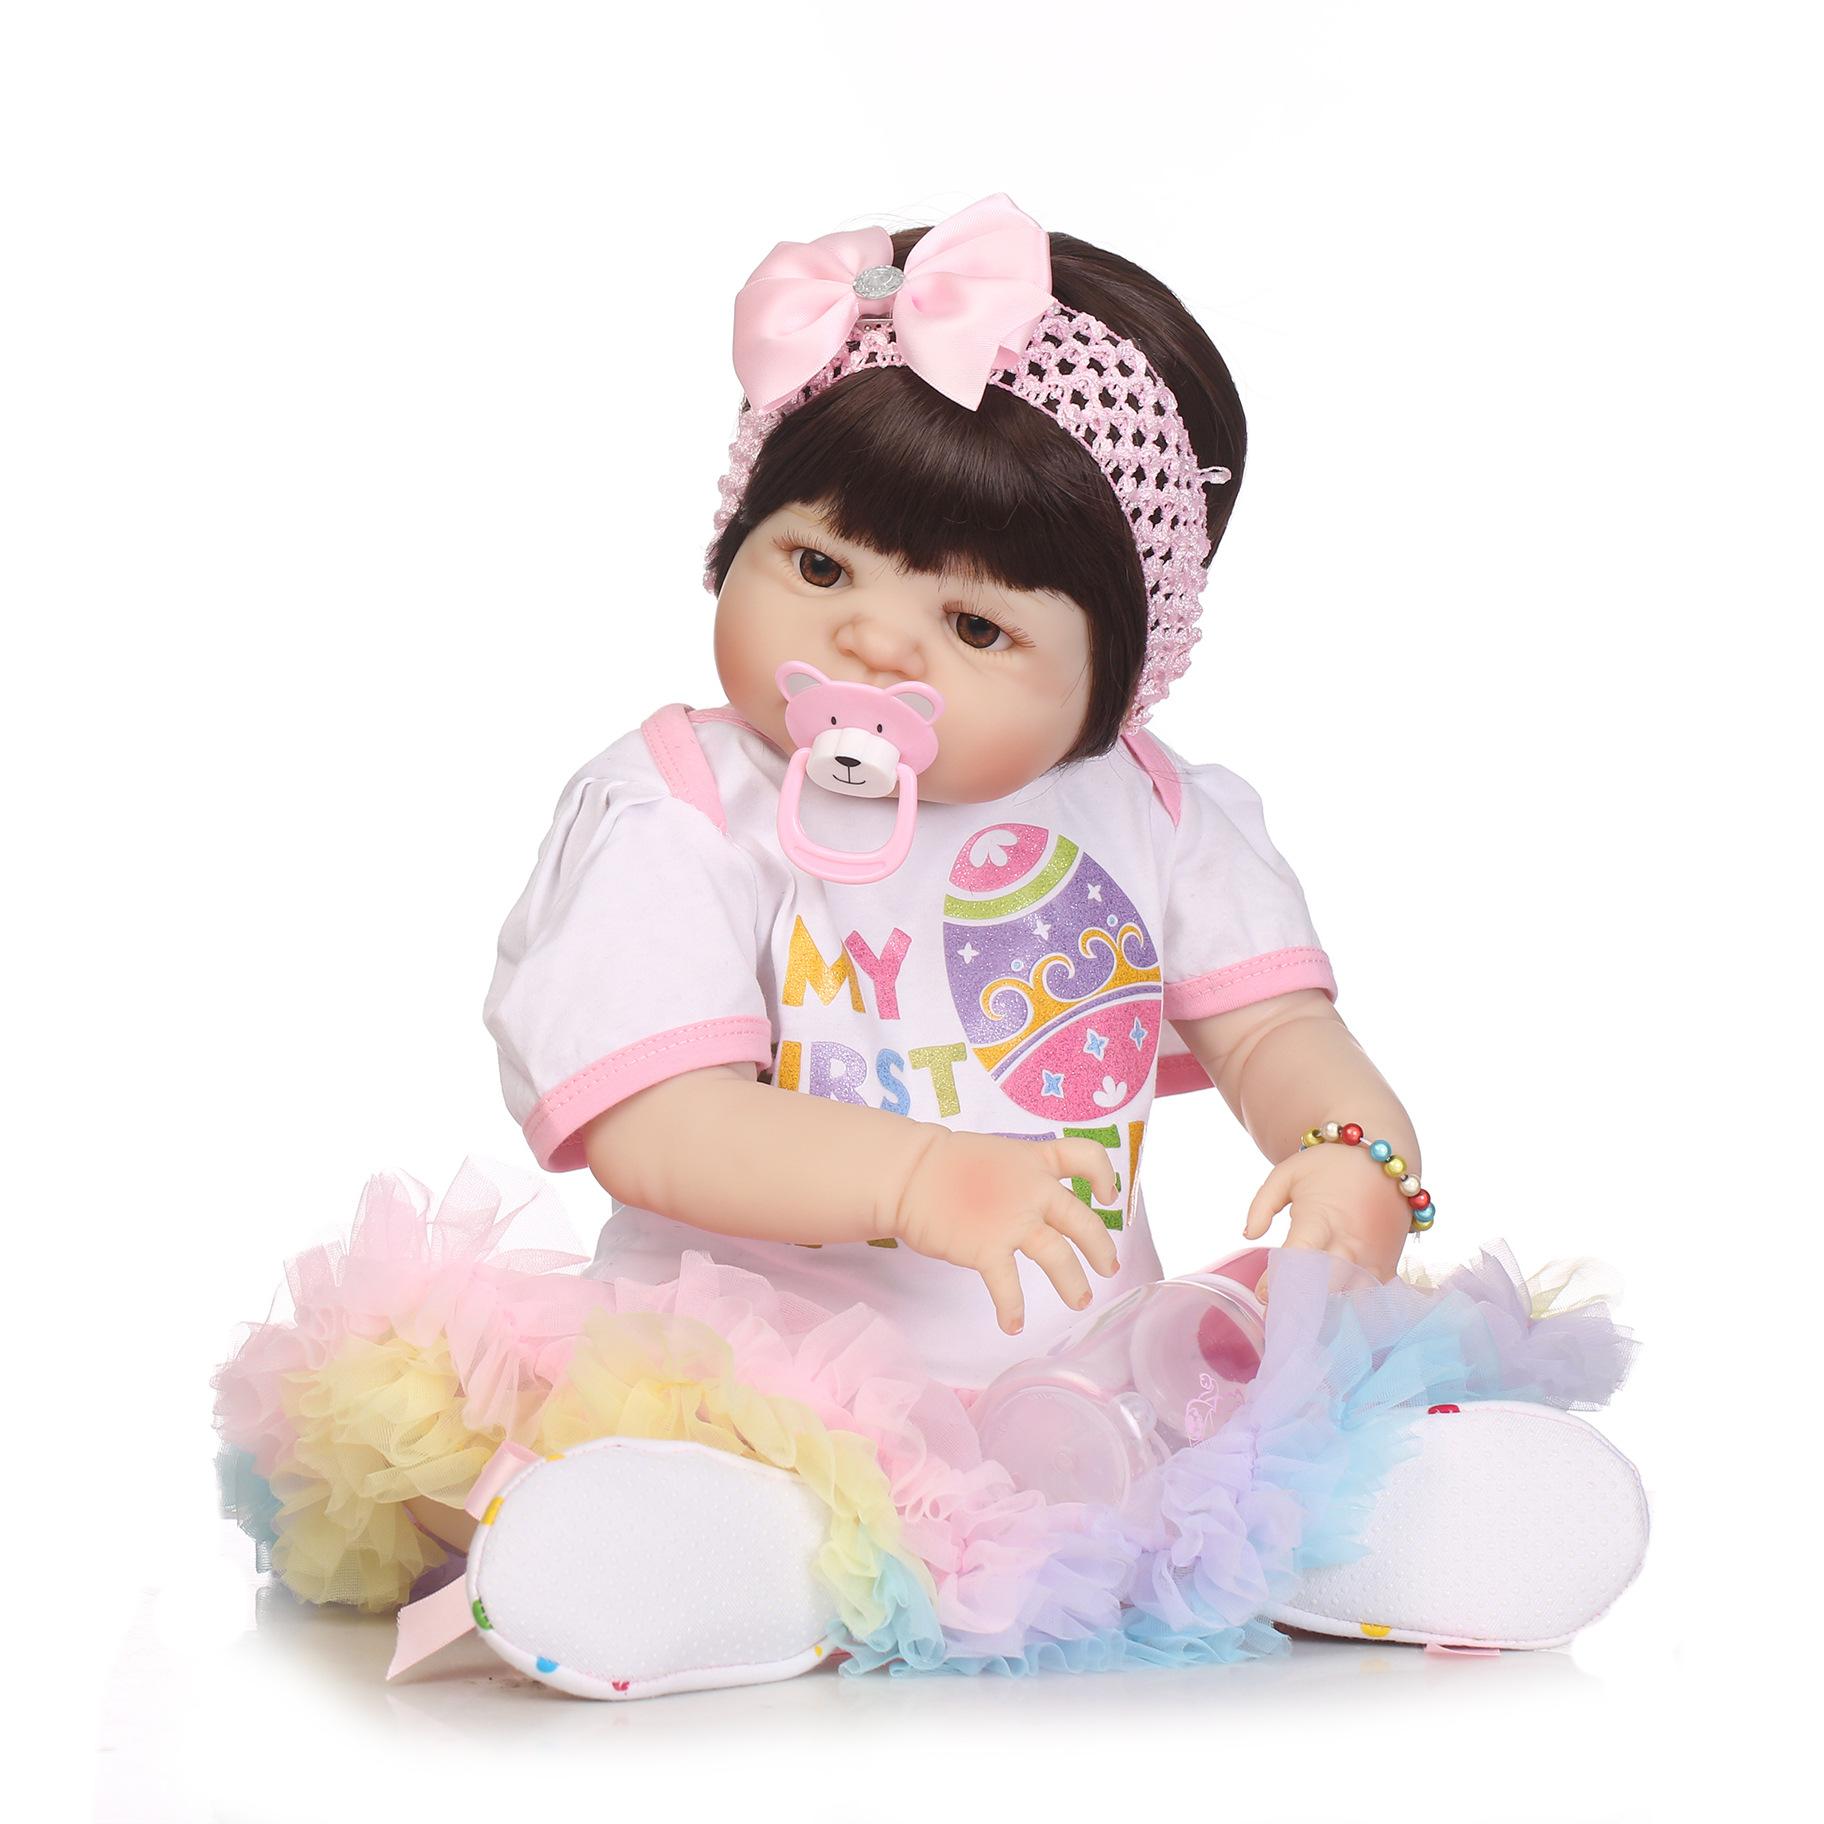 Soft Silica gel Doll 56cm Reborn Baby Appease Doll Lifelike Babies play play house toy for Children's Christmas Birthday Gift soft silica gel doll 57cm reborn baby appease doll lifelike babies play play house toy for children s christmas birthday gift